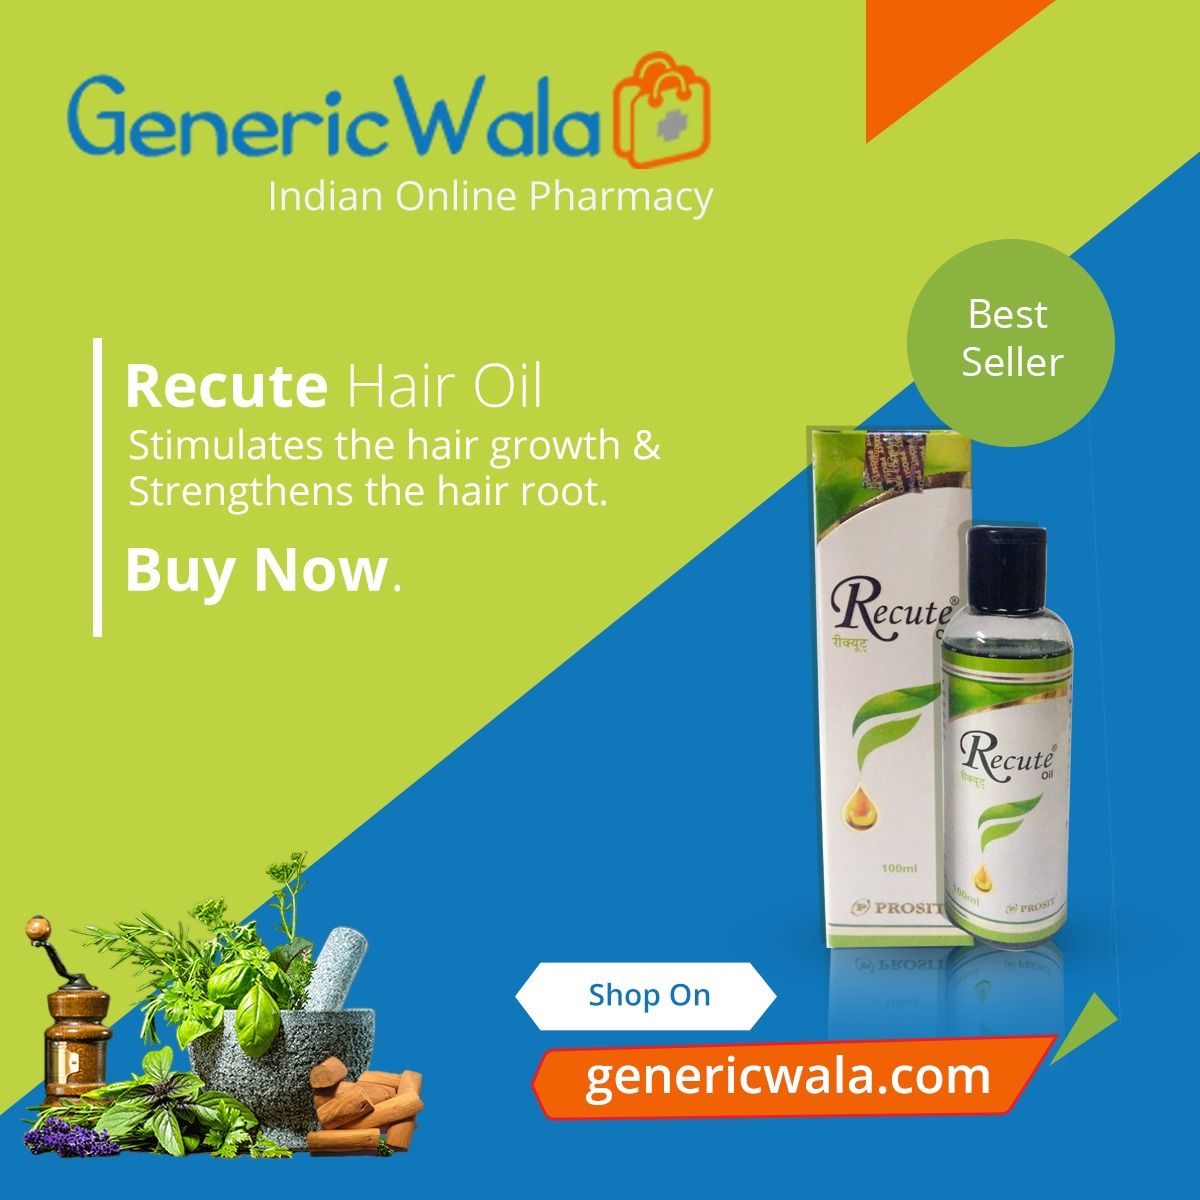 Recute Hair Oil 100 Ml Genericwala Com Indian Online Pharmacy Buy Generic And Branded Medicines Online Fast Delivery 4 Hours Delivery With In Hyderabad Cash On Delivery